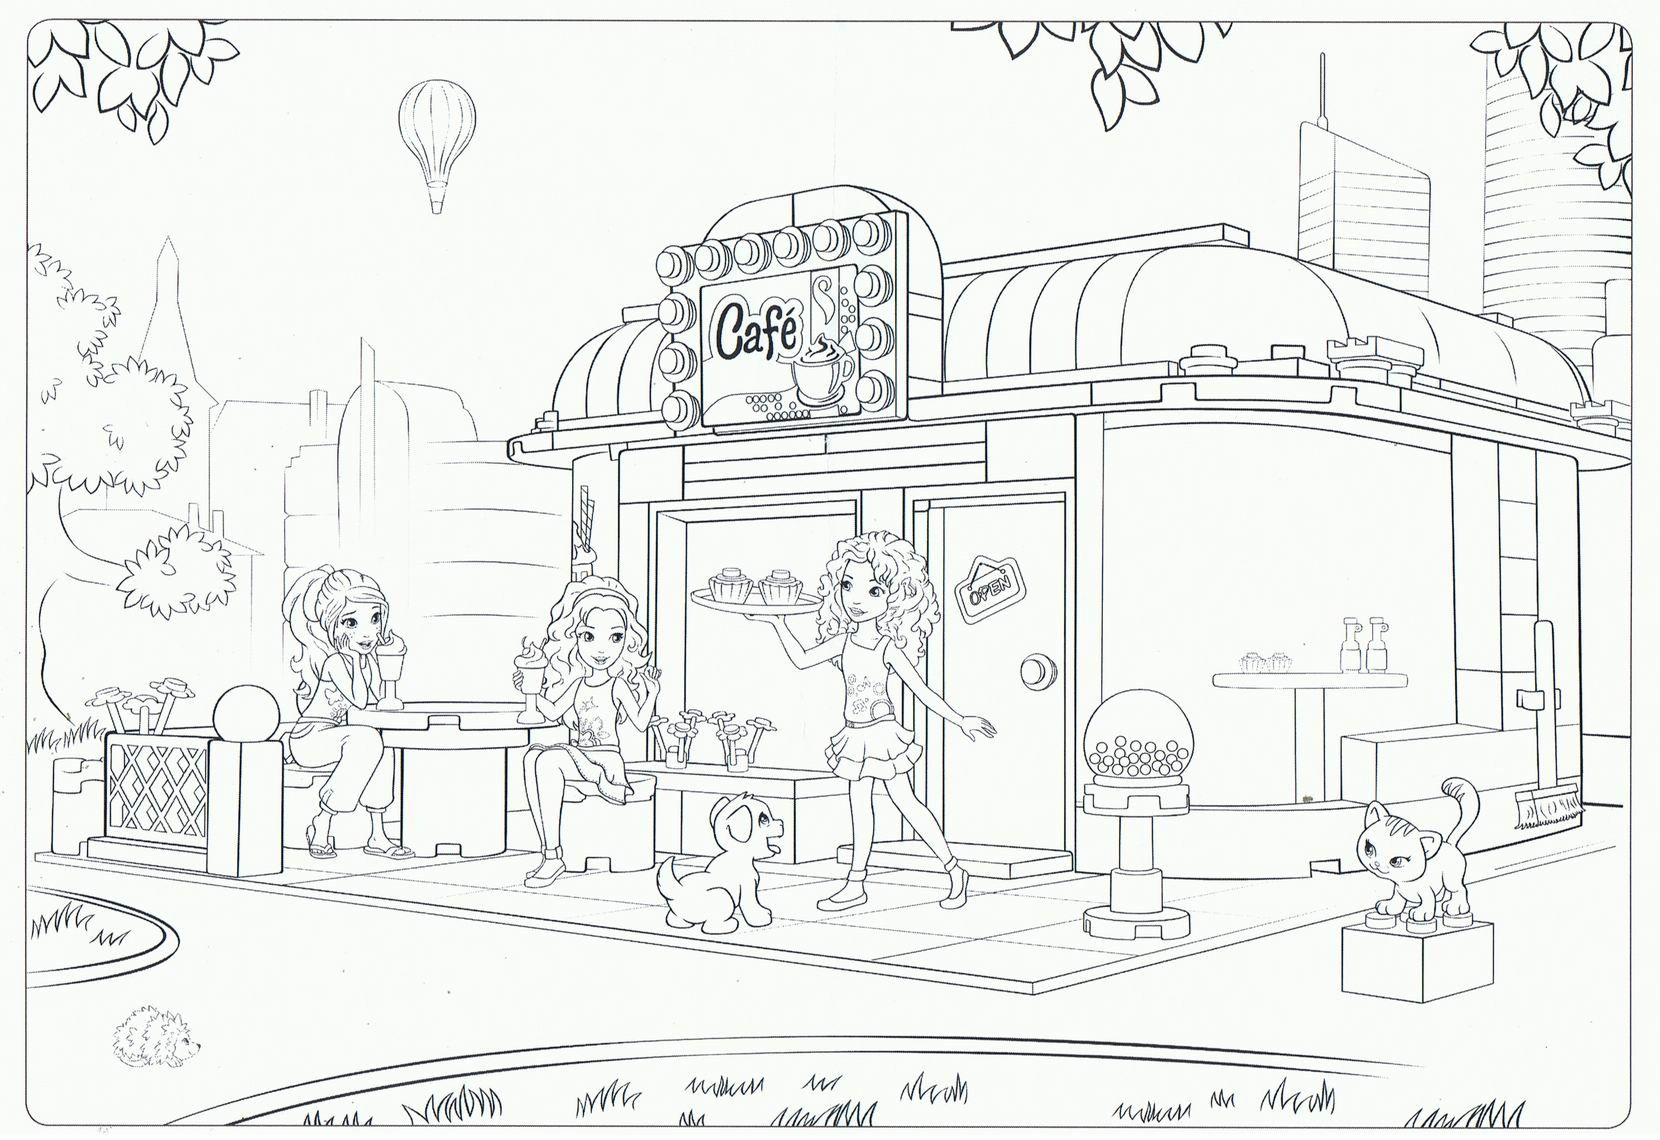 Ausmalbilder Playmobil Super 4 : Lego Friends Cafe Coloring Pages Isa Dibujos Pinterest Friends